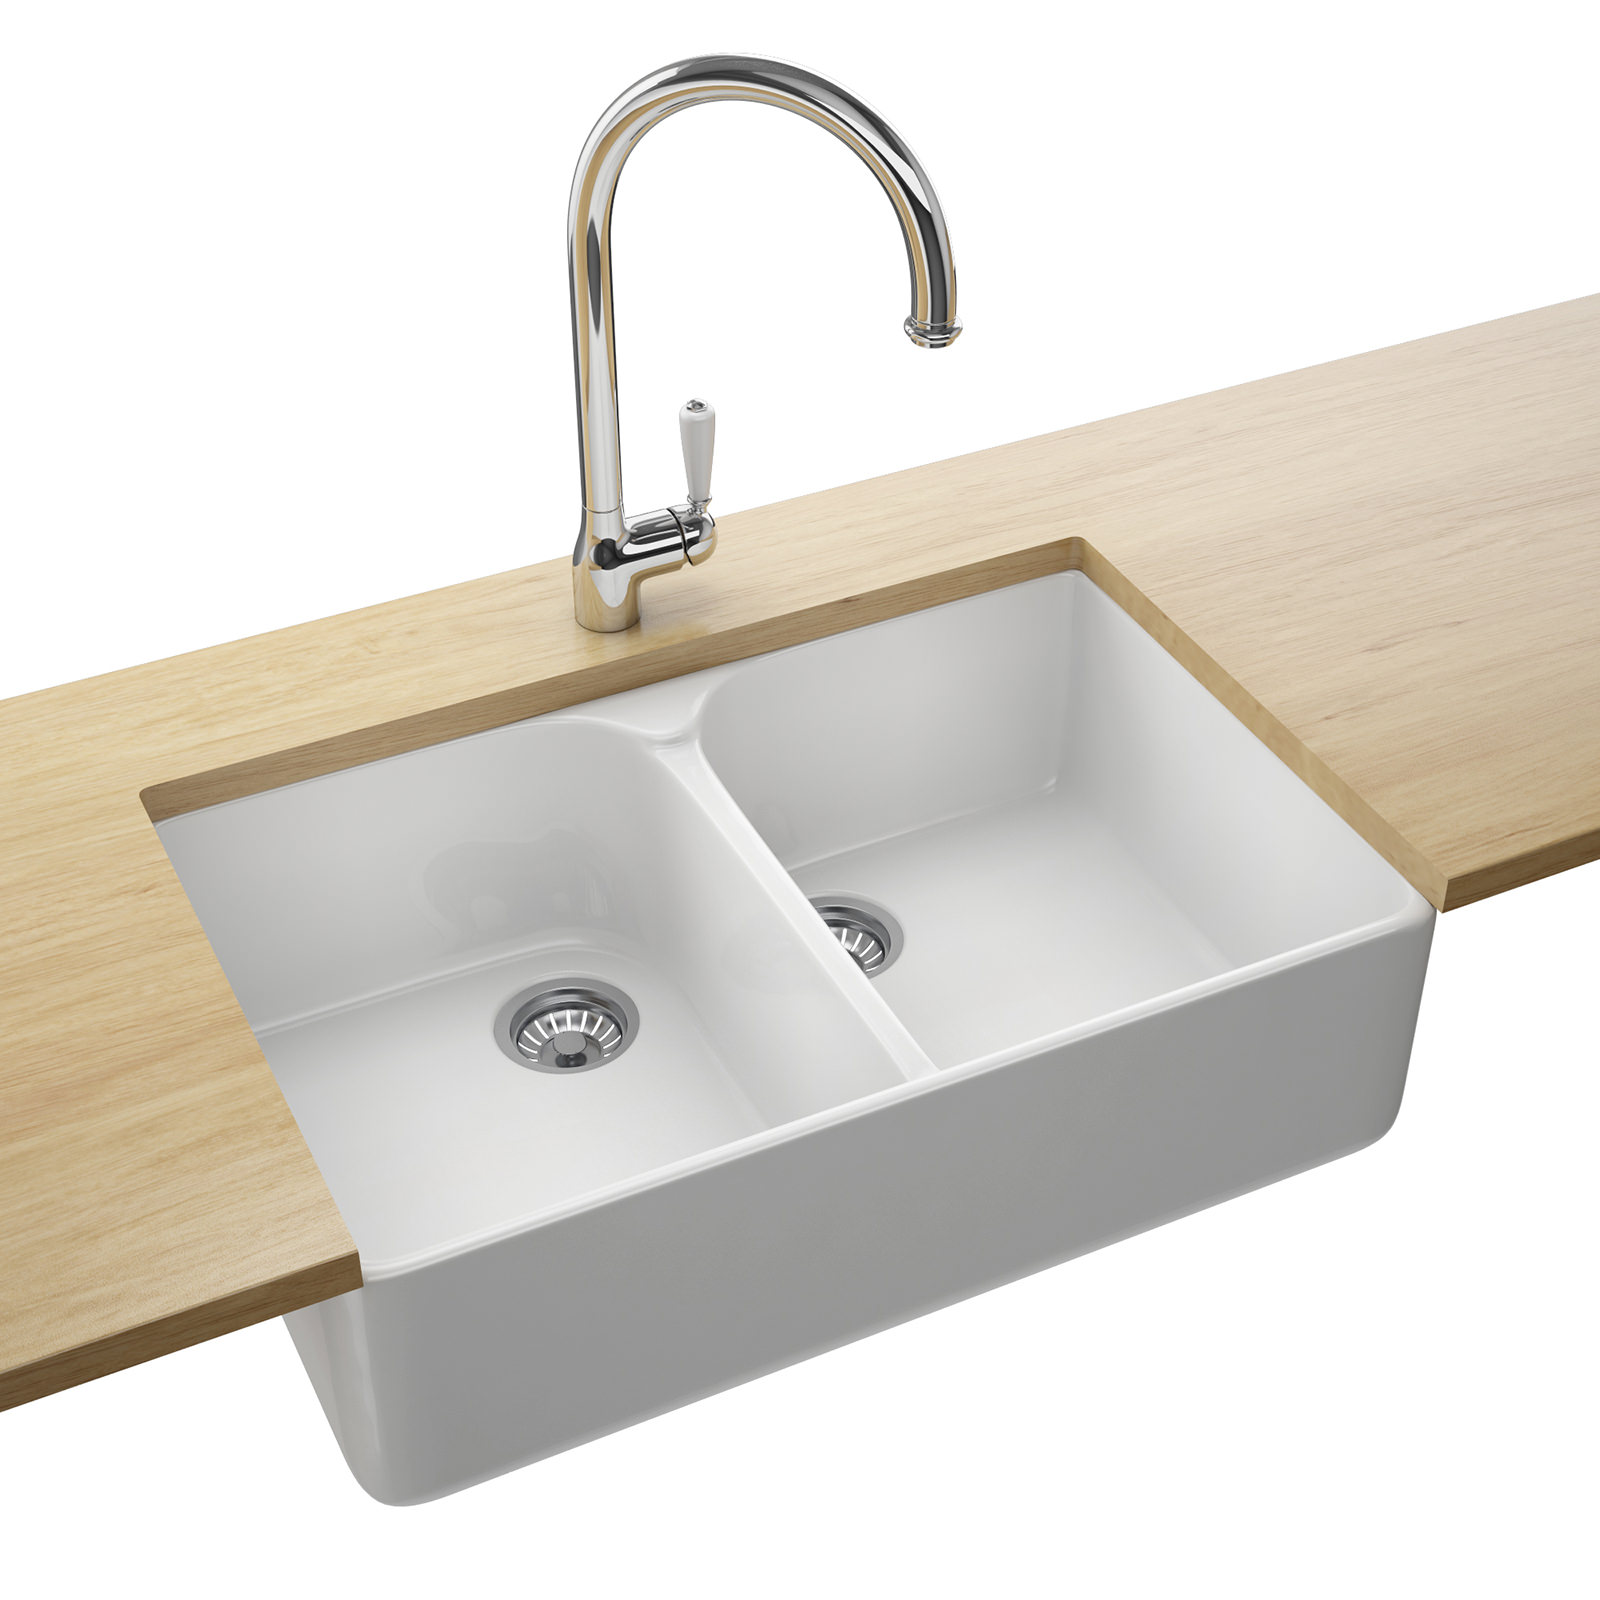 Franke Belfast Vbk 720 Ceramic White 2 0 Bowl Kitchen Sink